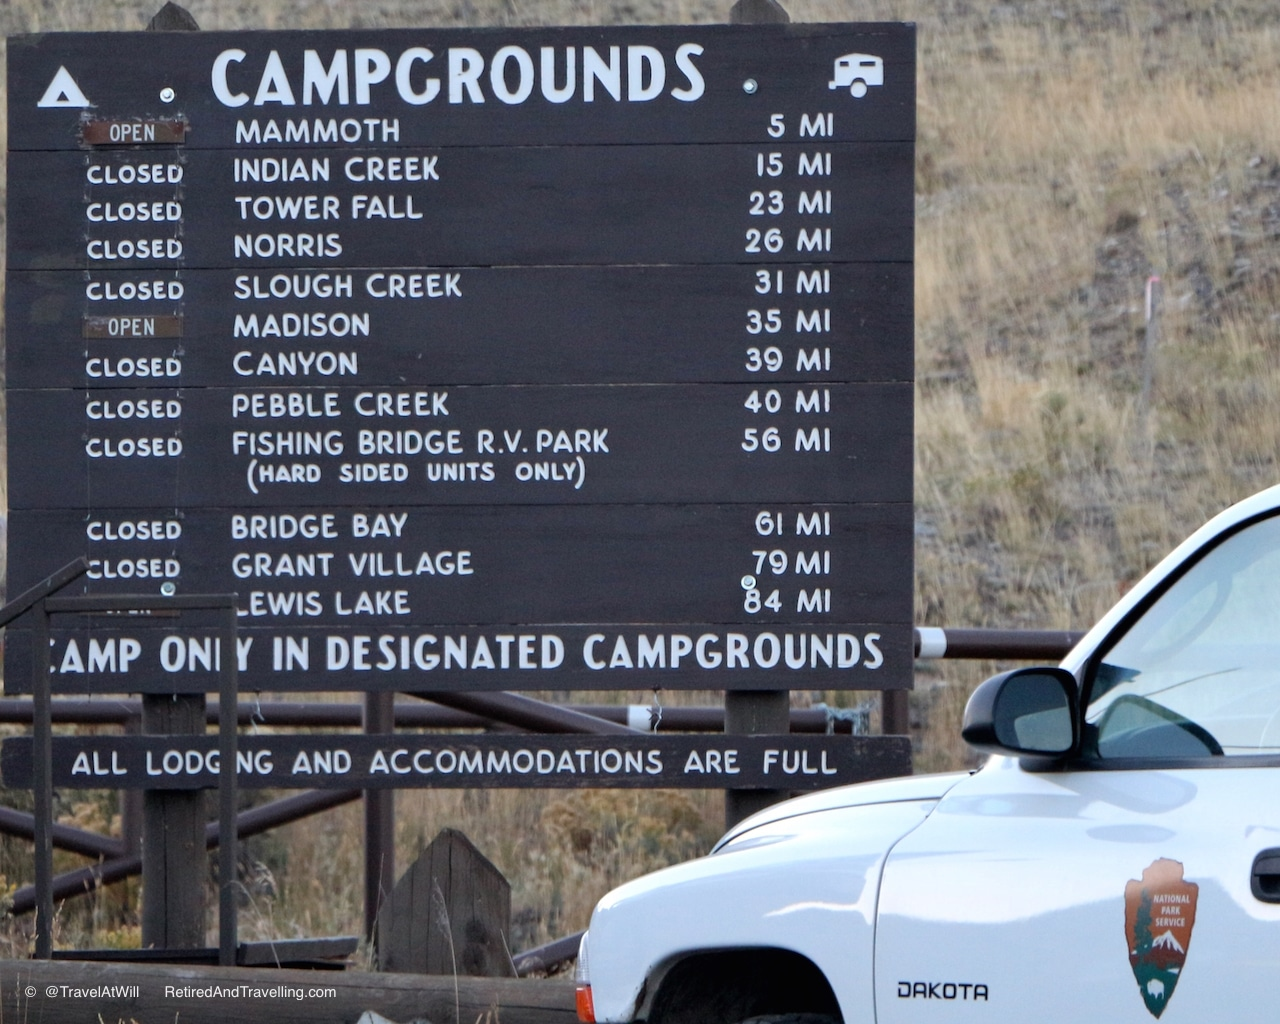 Park Accommodation Closed - Tips For Visiting the National Parks.jpg